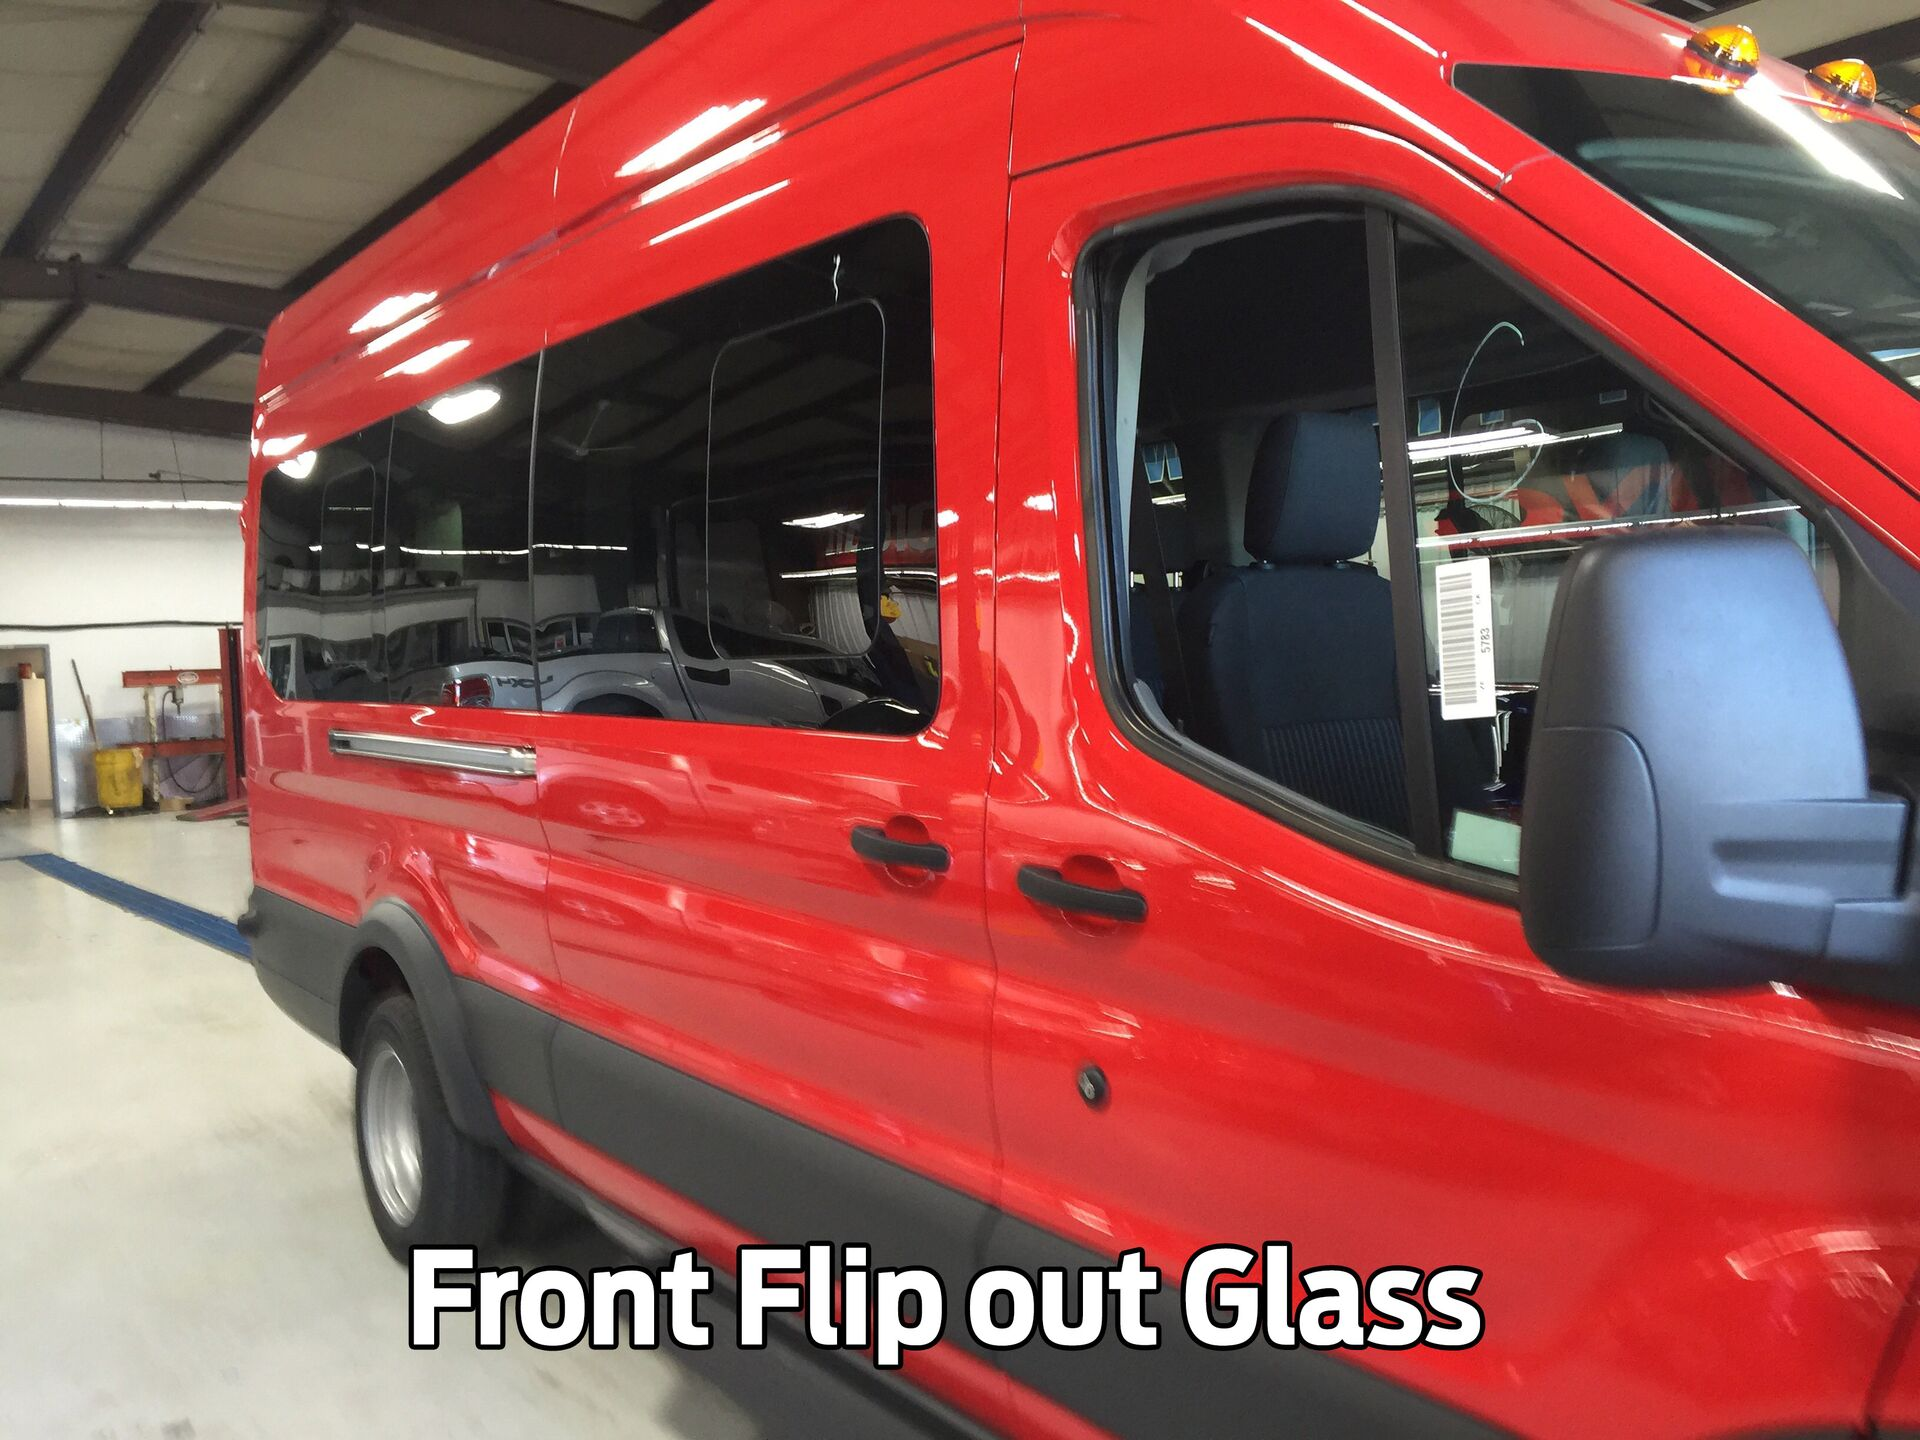 Front Flip Out Glass